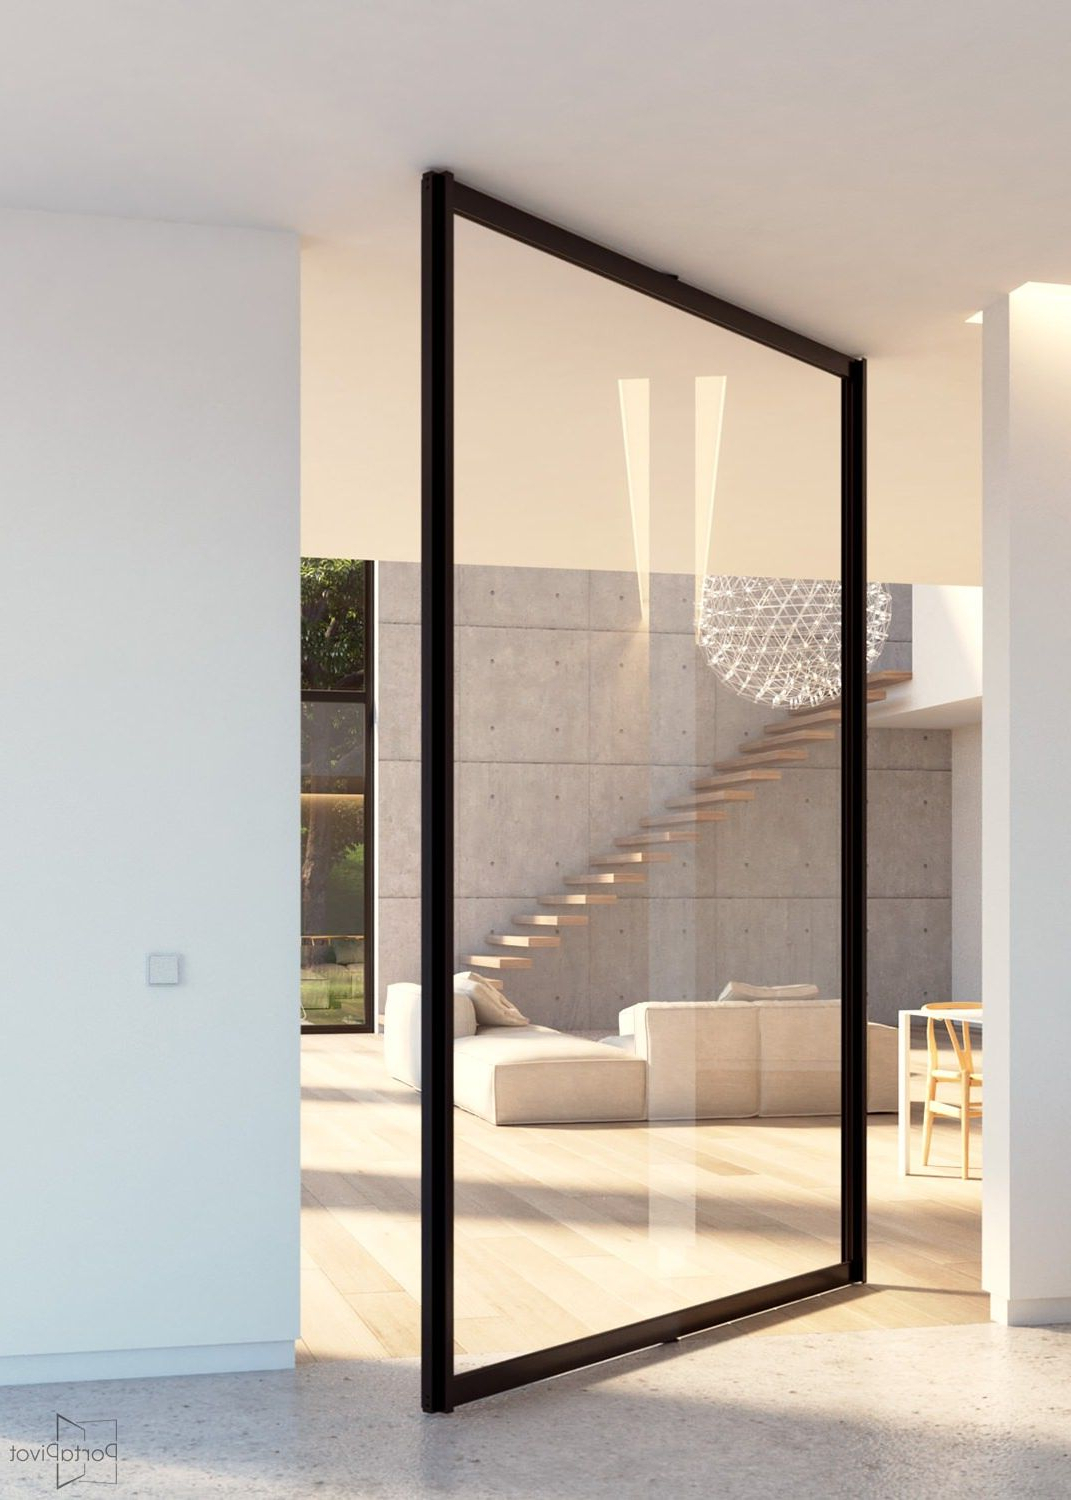 Glass Pivot Door With Central Axis Pivoting Hinge Modern